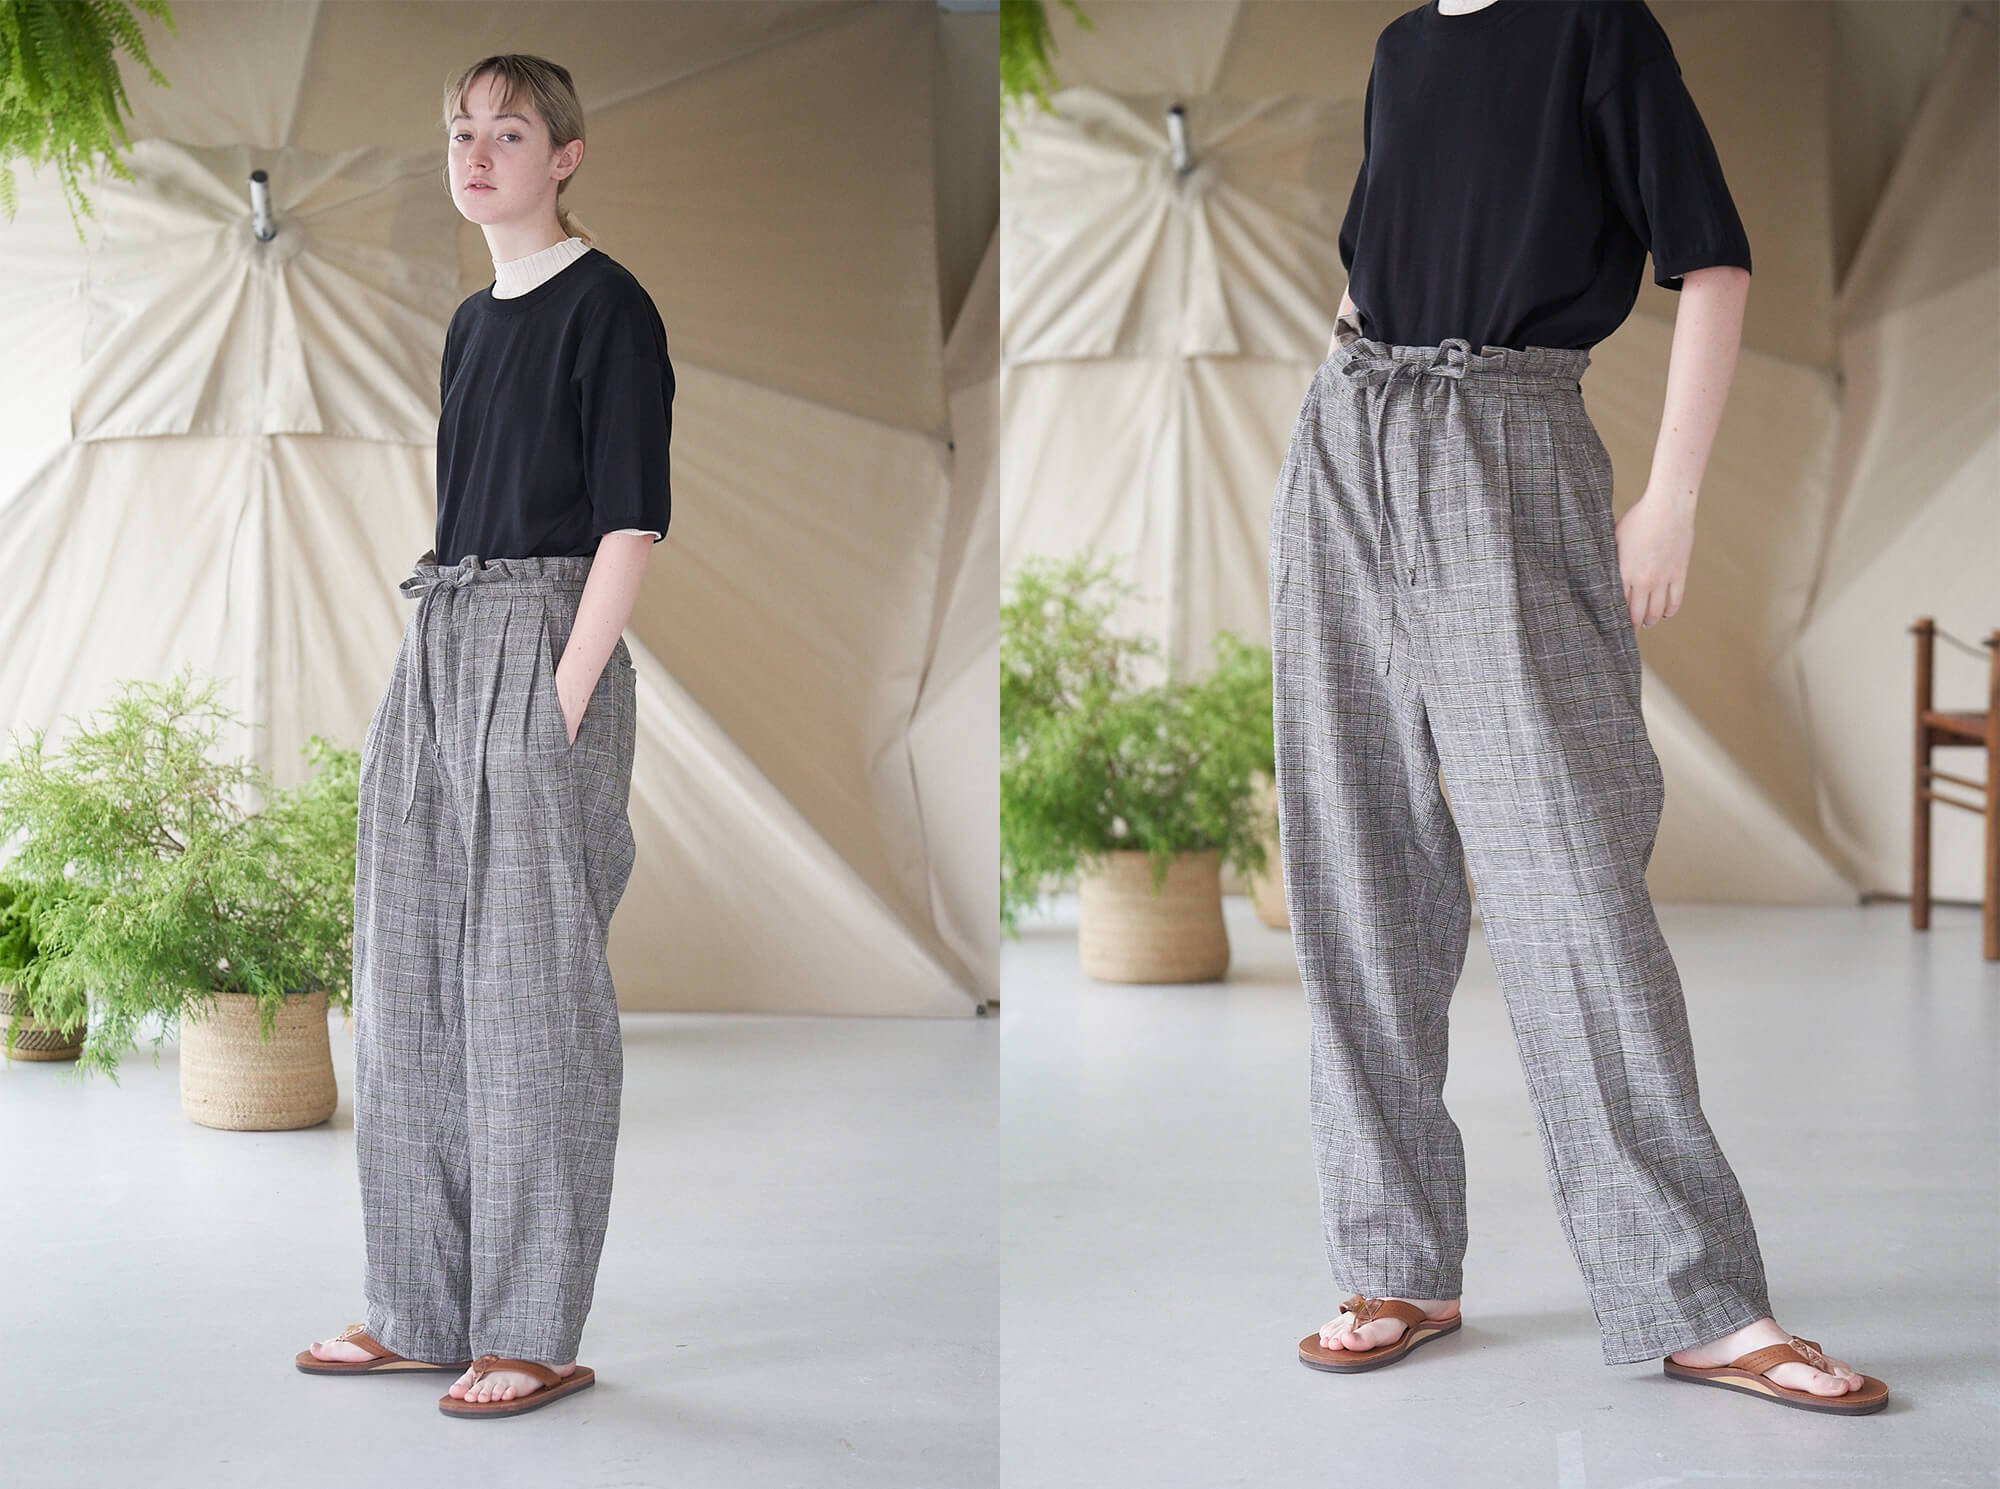 <img class='new_mark_img1' src='https://img.shop-pro.jp/img/new/icons14.gif' style='border:none;display:inline;margin:0px;padding:0px;width:auto;' />glen checked-tweed wide leg trousers